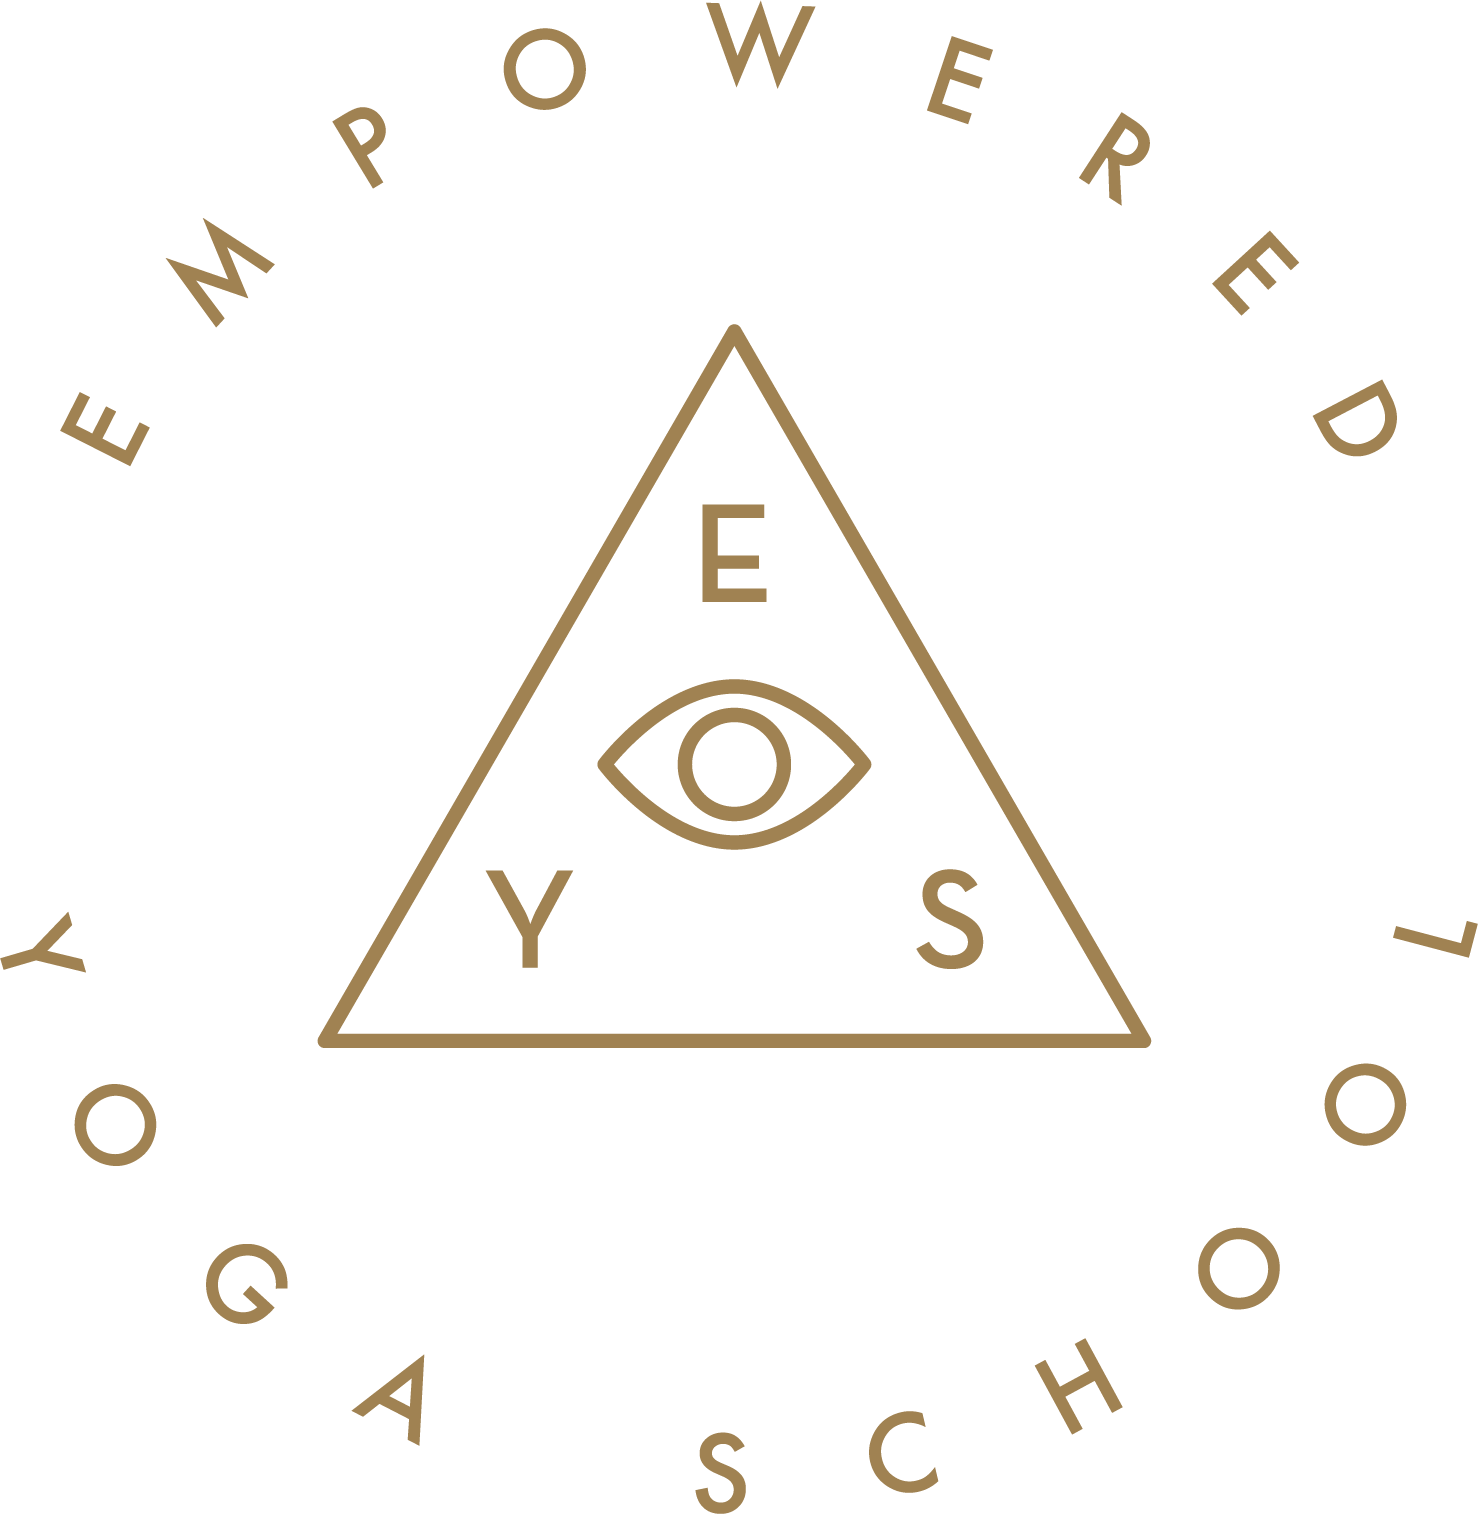 EMPOWERED YOGA SCHOOL